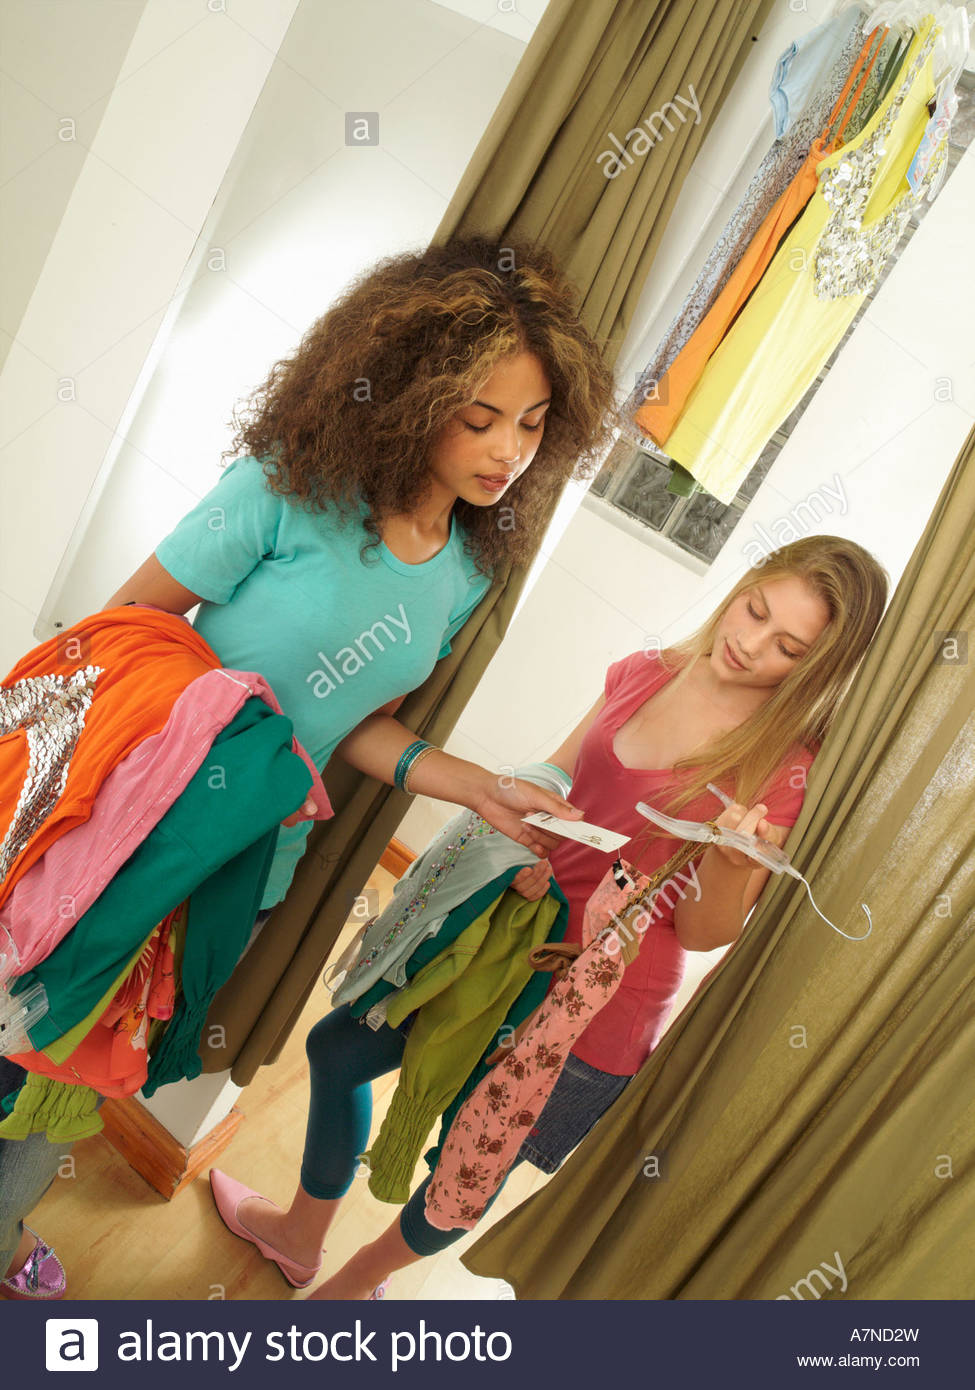 Two teenage girls 15 17 standing in clothes shop fitting room checking new top price tag tilt - Stock Image